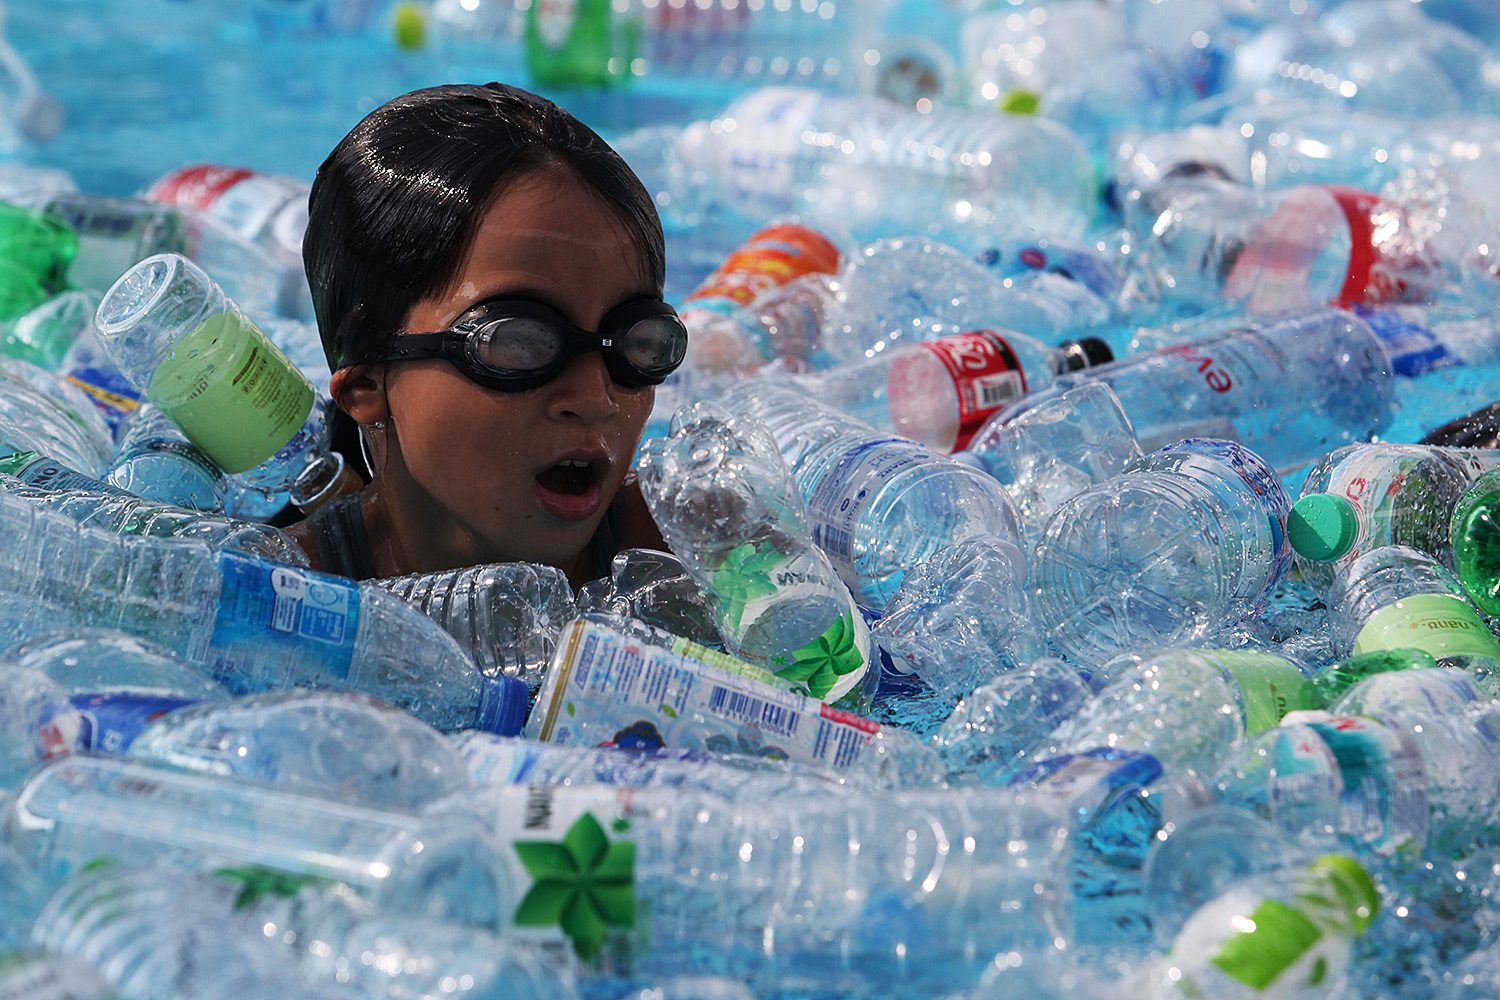 Bangkok Prep had students swim among plastic bottles to create awareness of plastic waste in oceans. (Photo by Wichan Charoenkiatpakul)